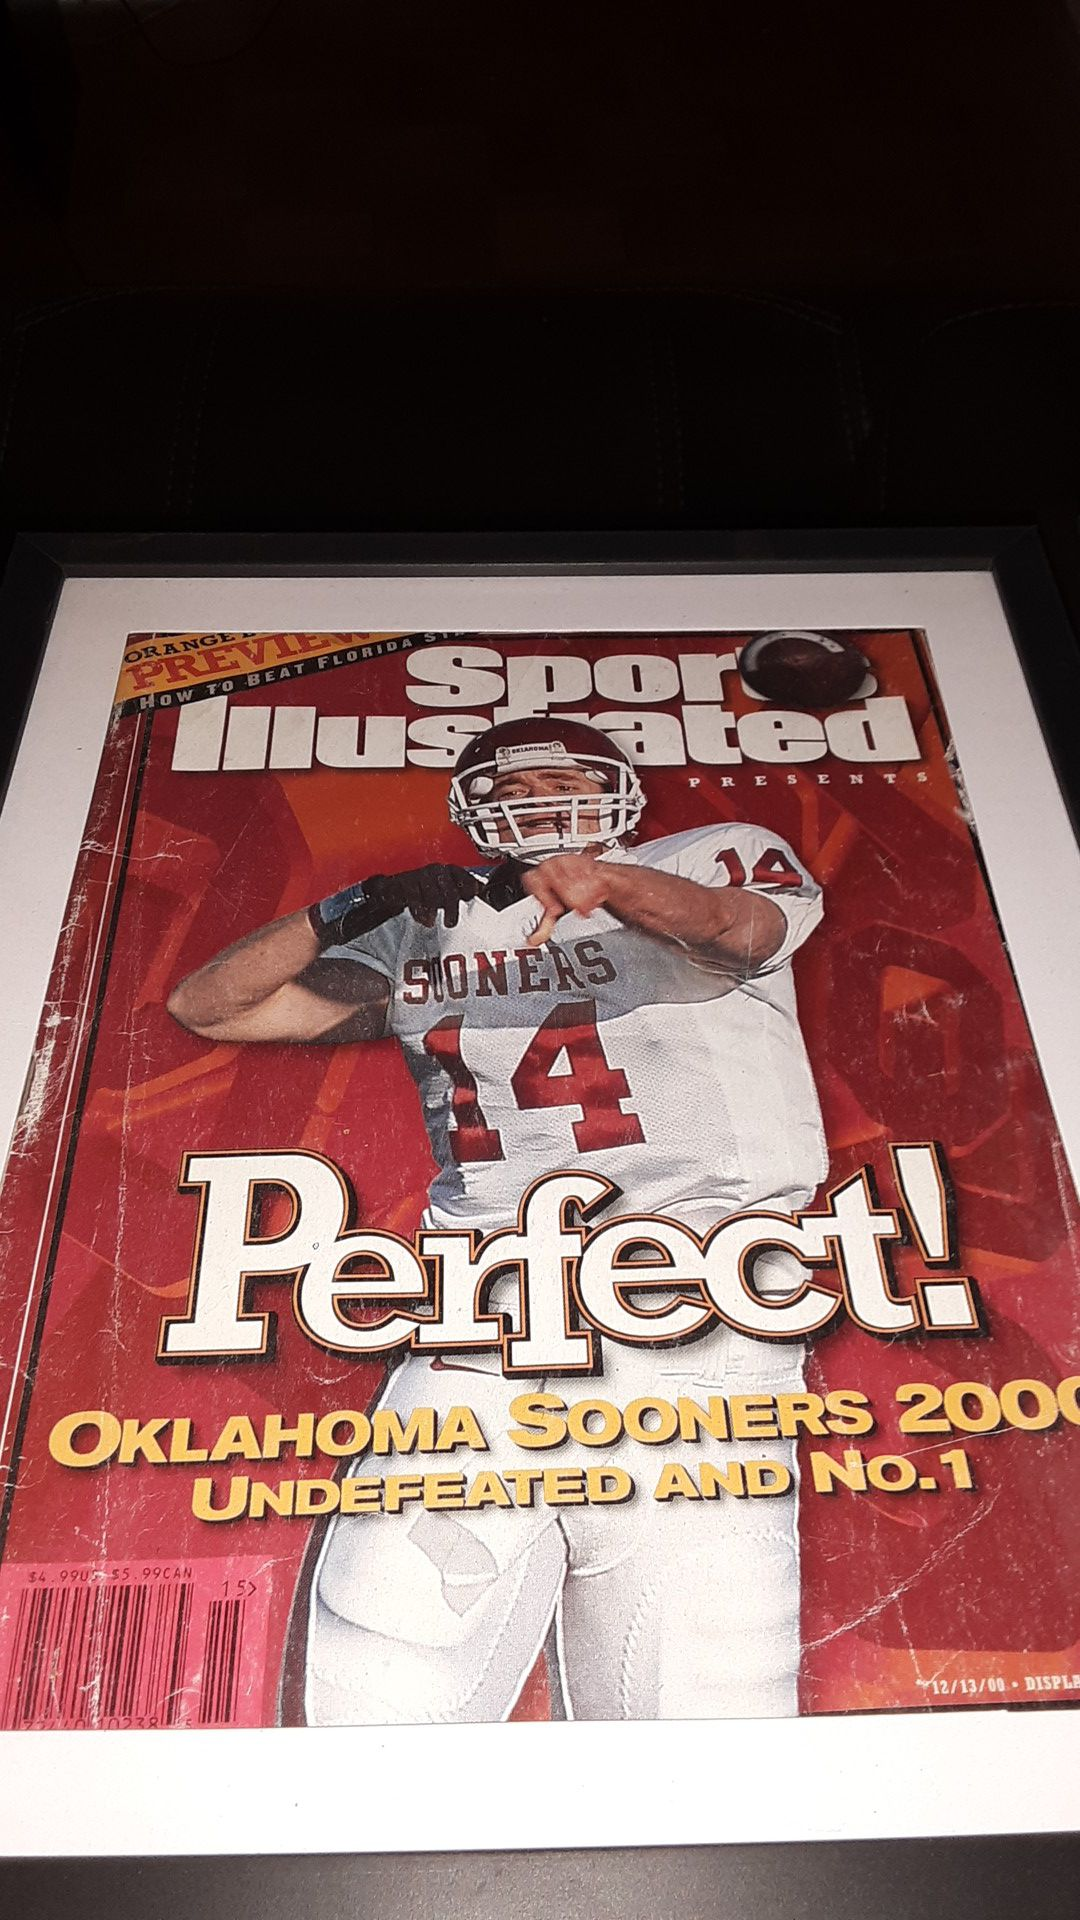 2 Sooners on sports illustrated